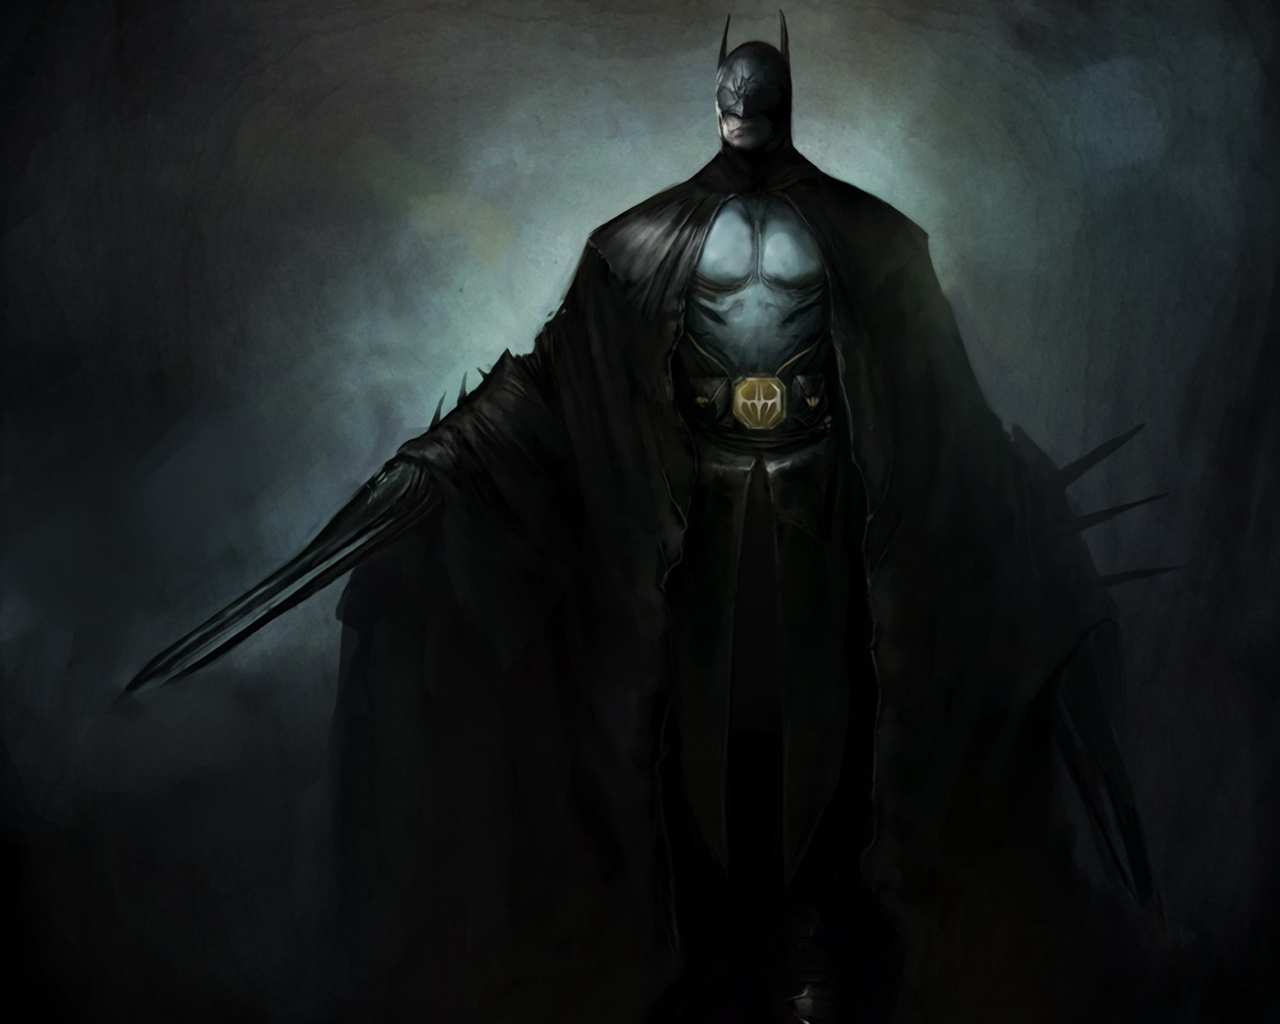 batman epic hero Start studying 13 characteristics of an epic hero learn vocabulary, terms, and more with flashcards, games, and other study tools.